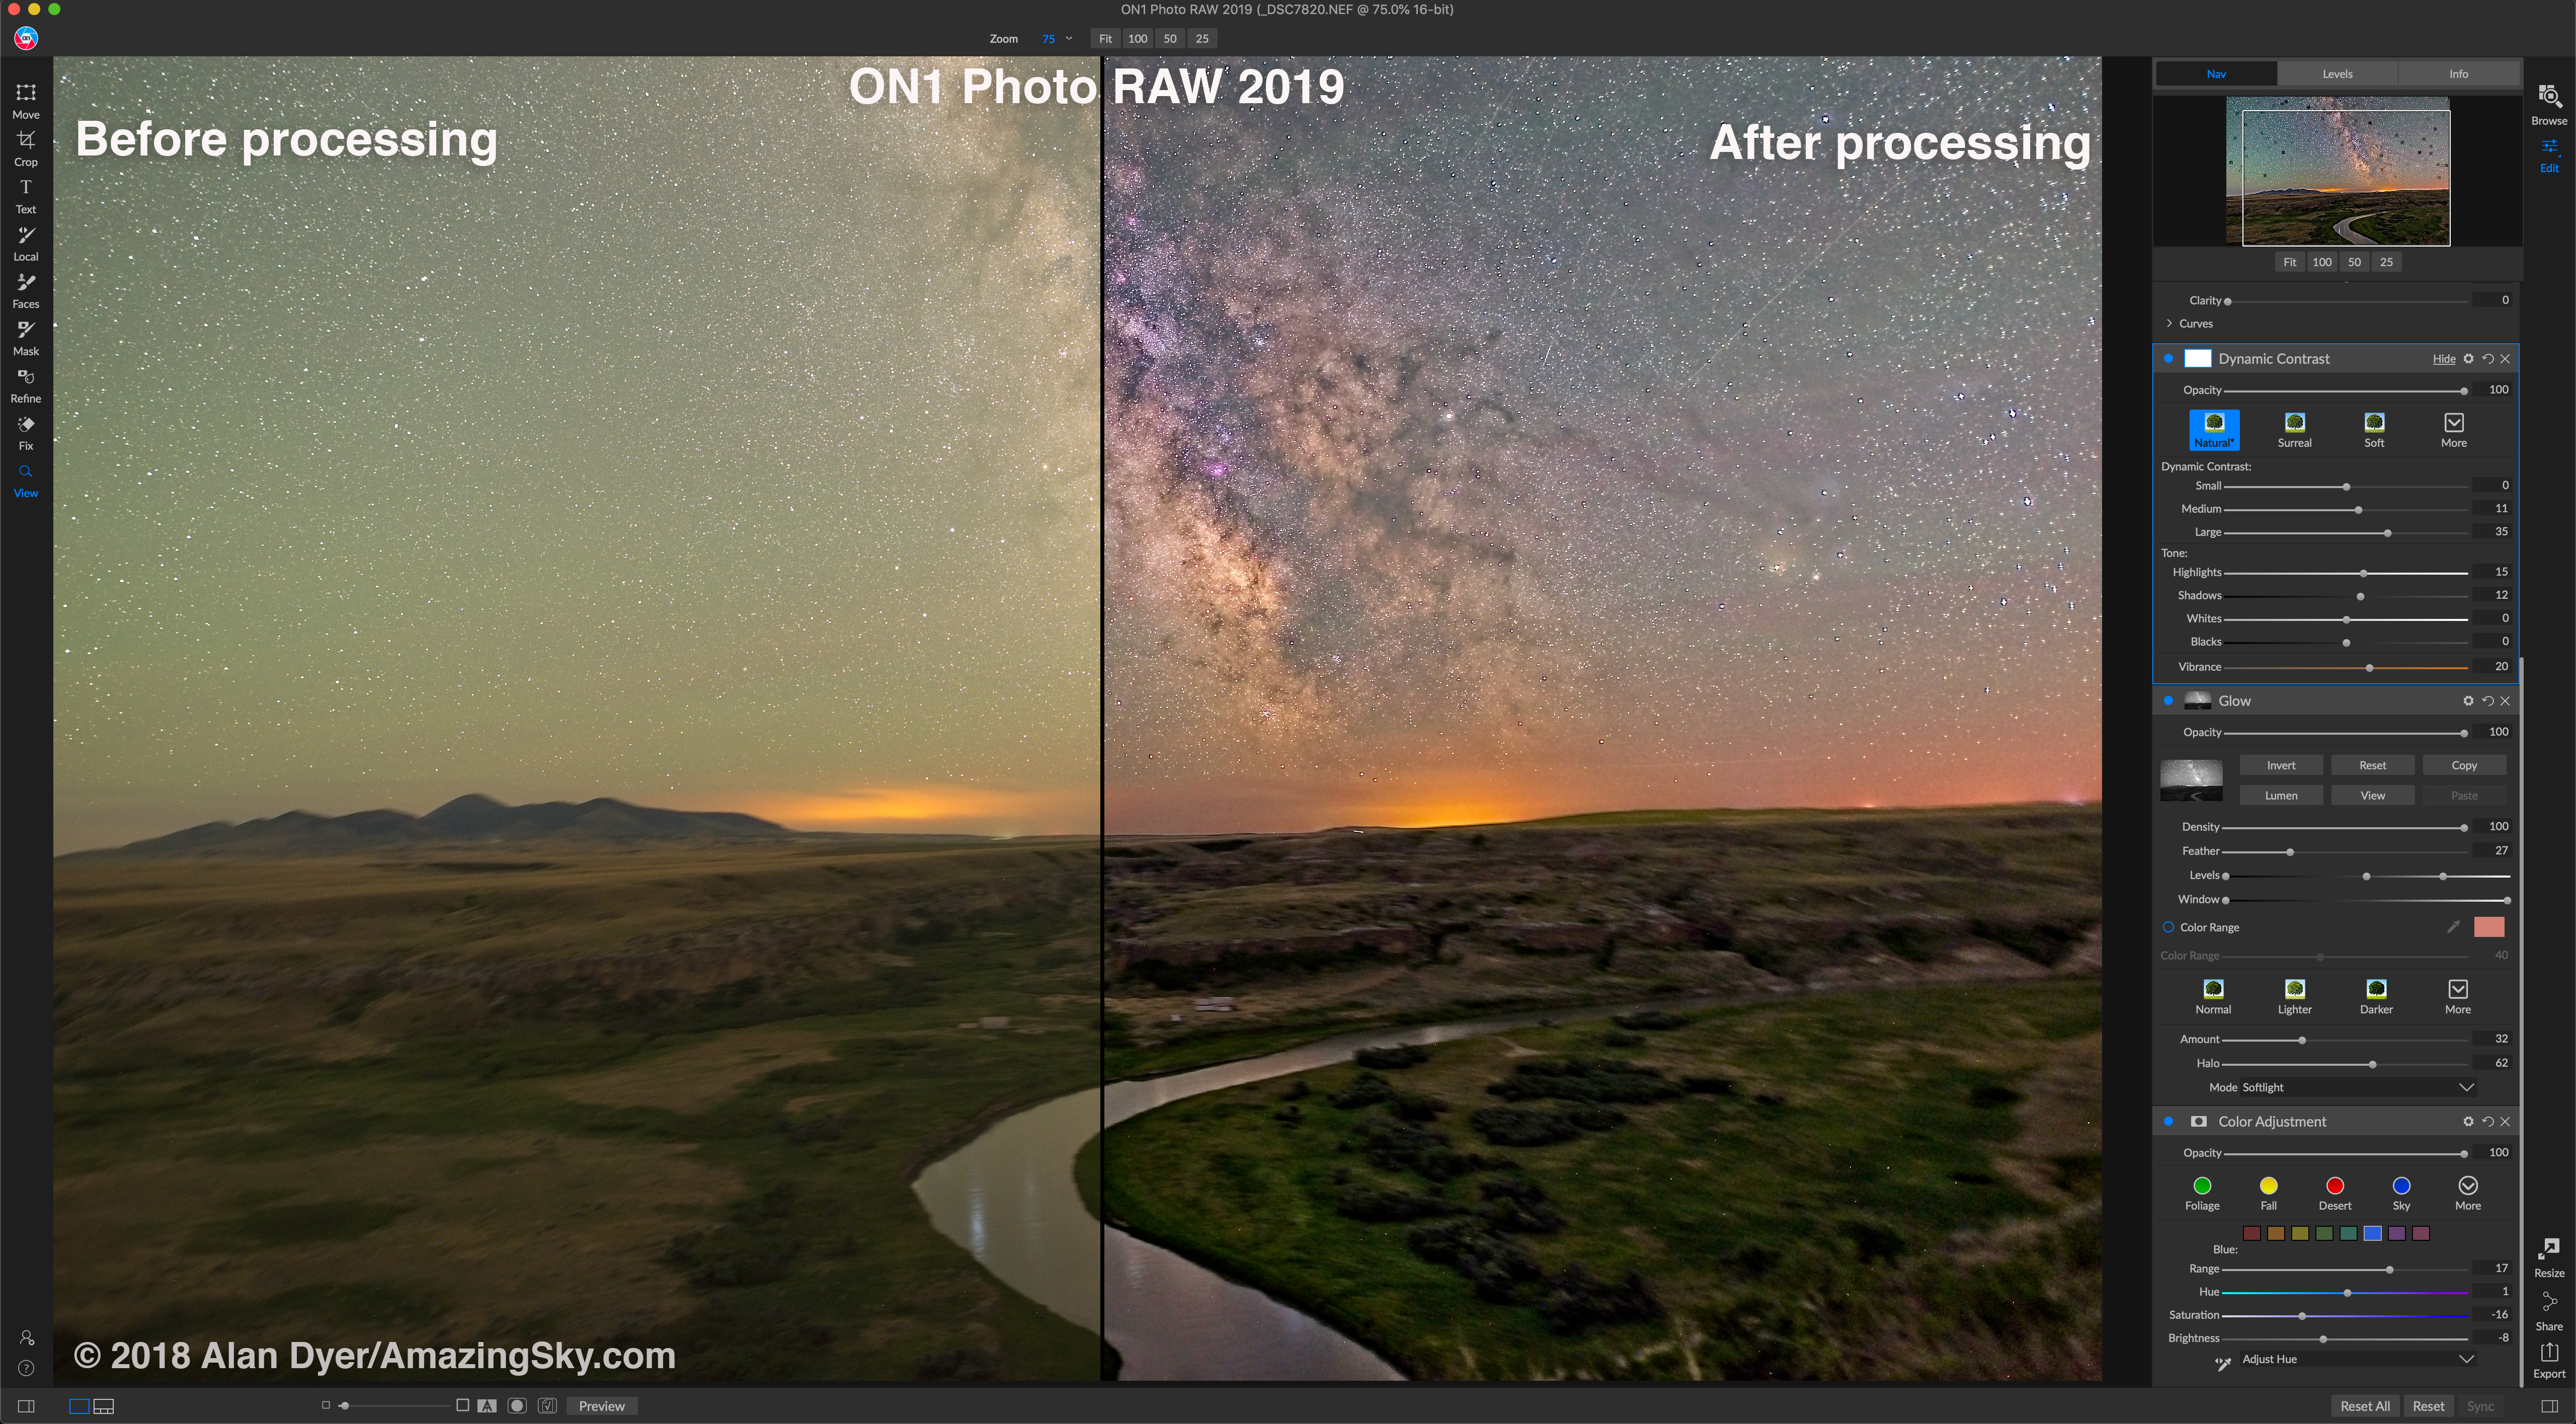 ON1 Before and After Processing